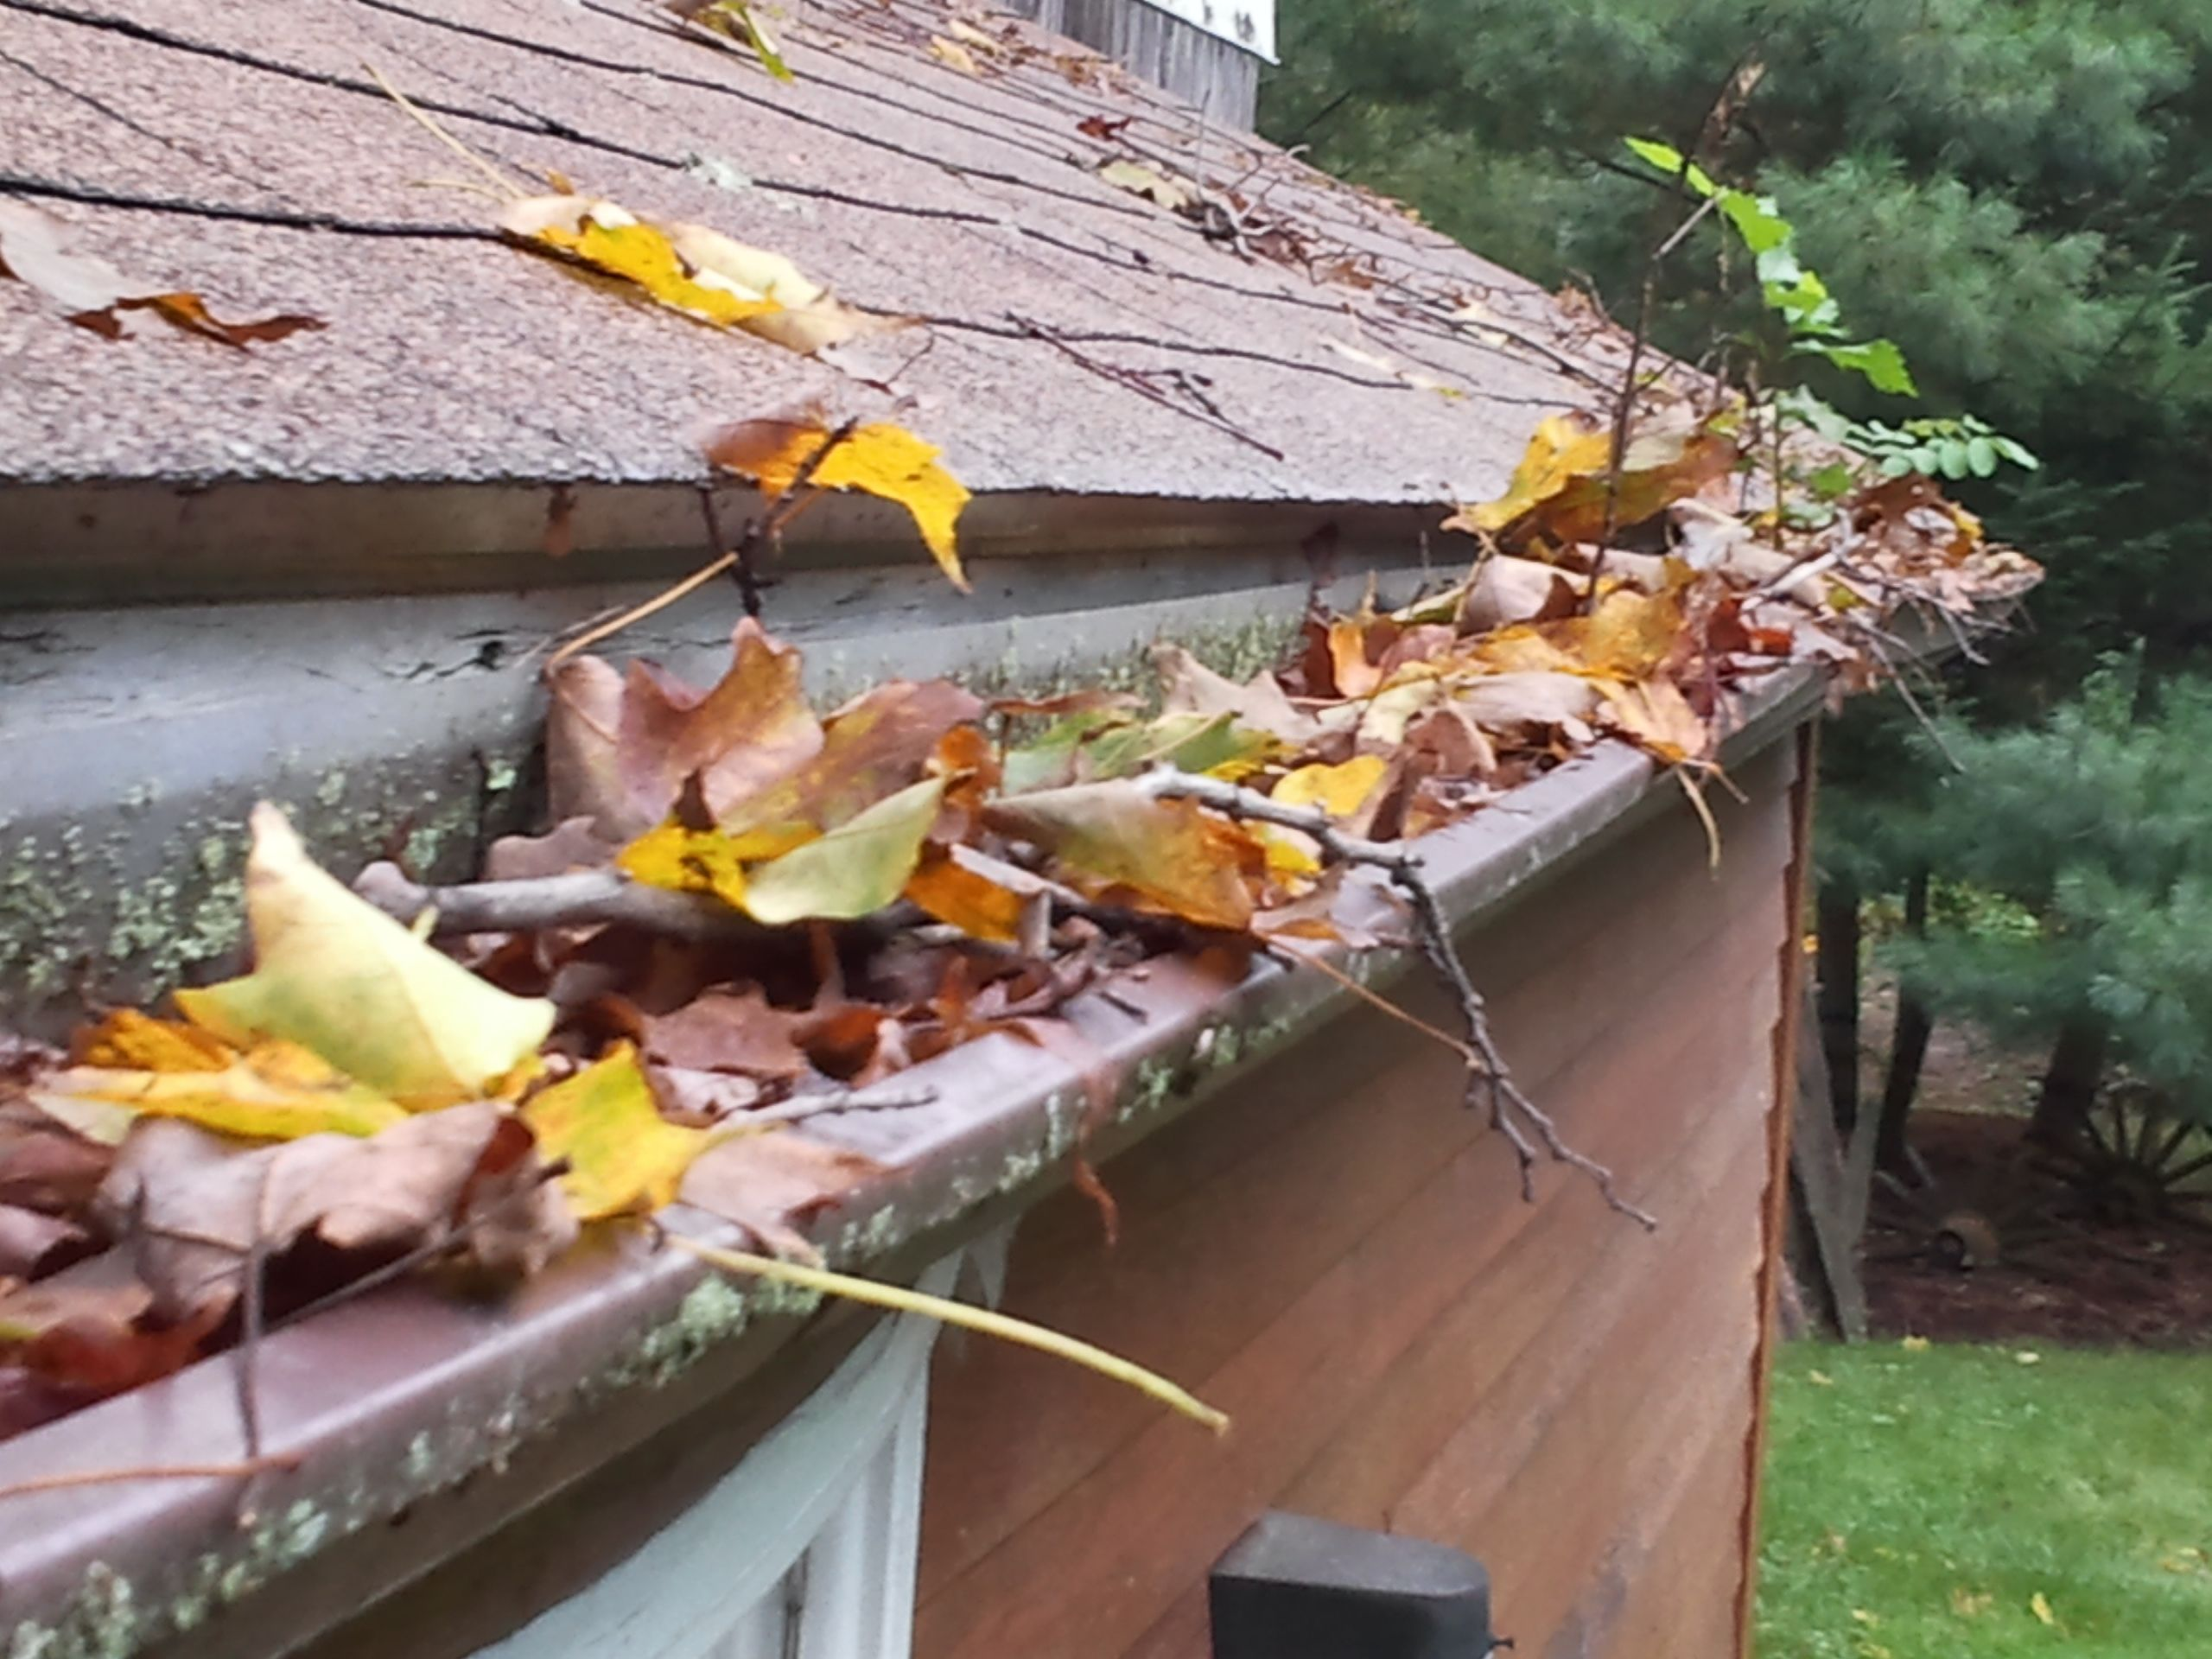 Say Goodbye To Clogged Gutters Forever Contact Tlc Today For Your No Obligation Review Of Your Gutter System Http Www Cleaning Gutters Water Damage Gutter